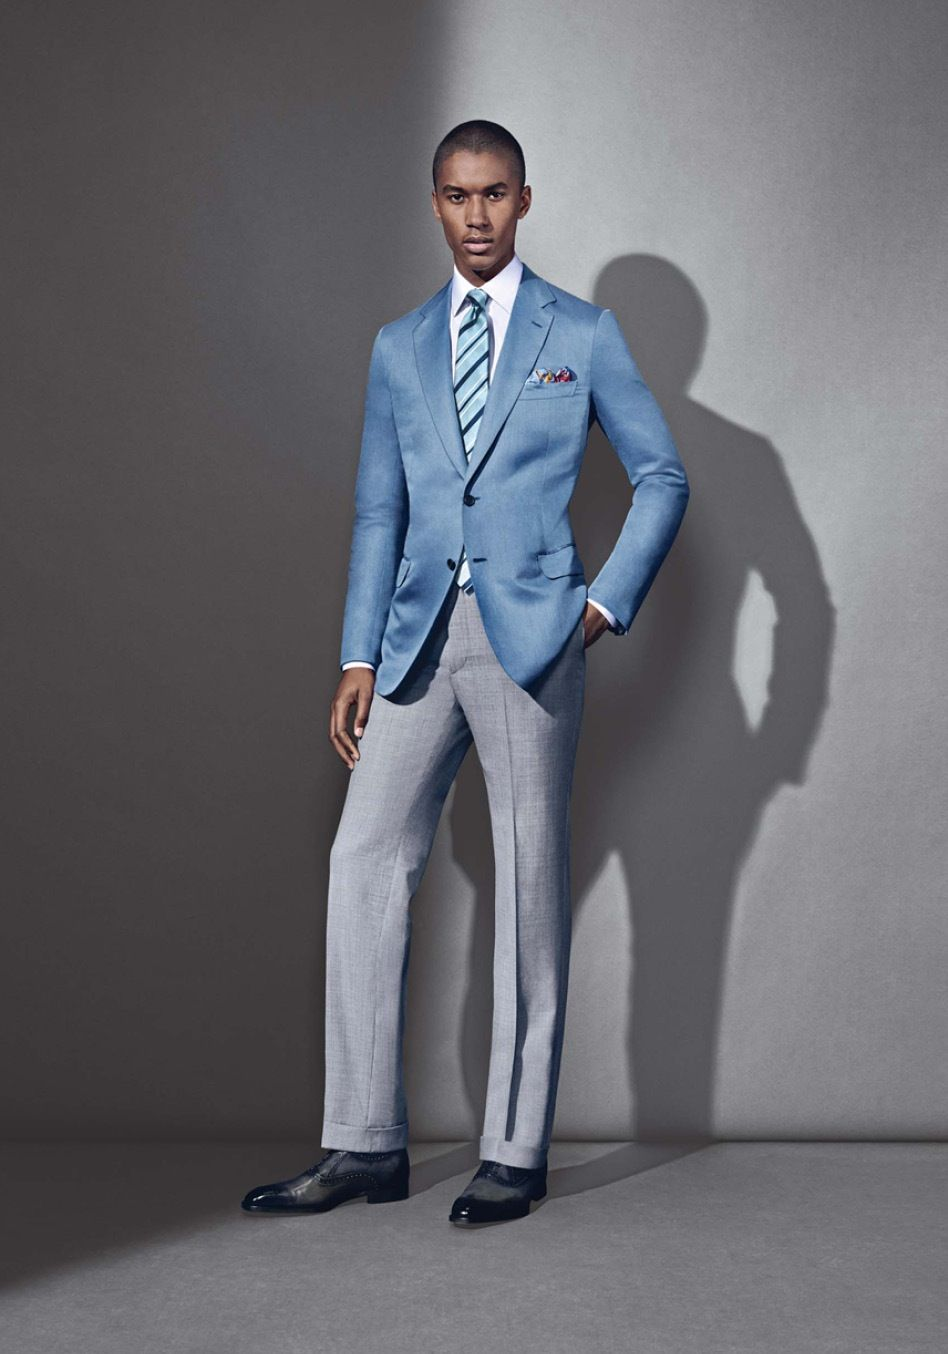 Mens Suits Wedding Season Trends From Barneys New York | Mens suits